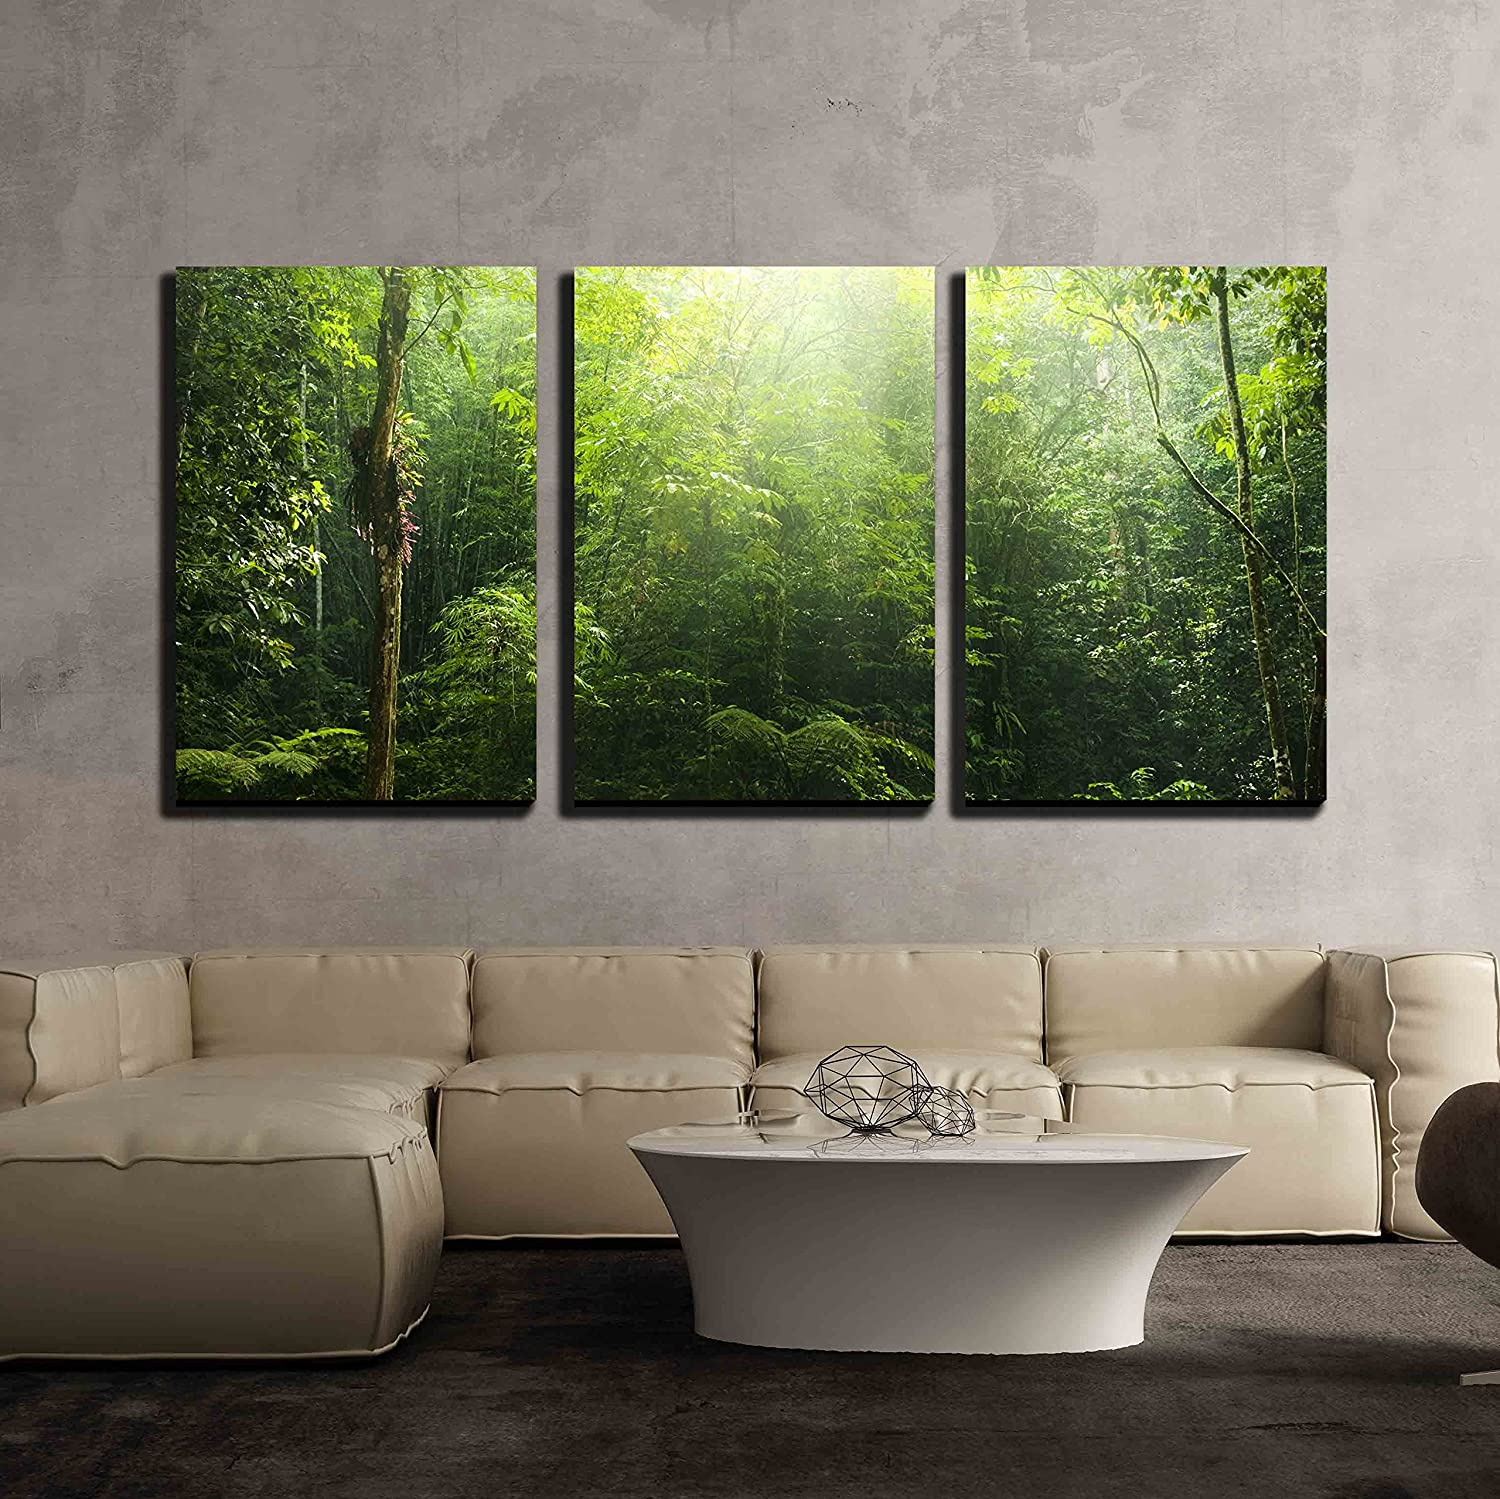 """wall26 - 3 Piece Canvas Wall Art - Green Forest with Ray of Light. - Modern Home Art Stretched and Framed Ready to Hang - 24""""x36""""x3 Panels"""